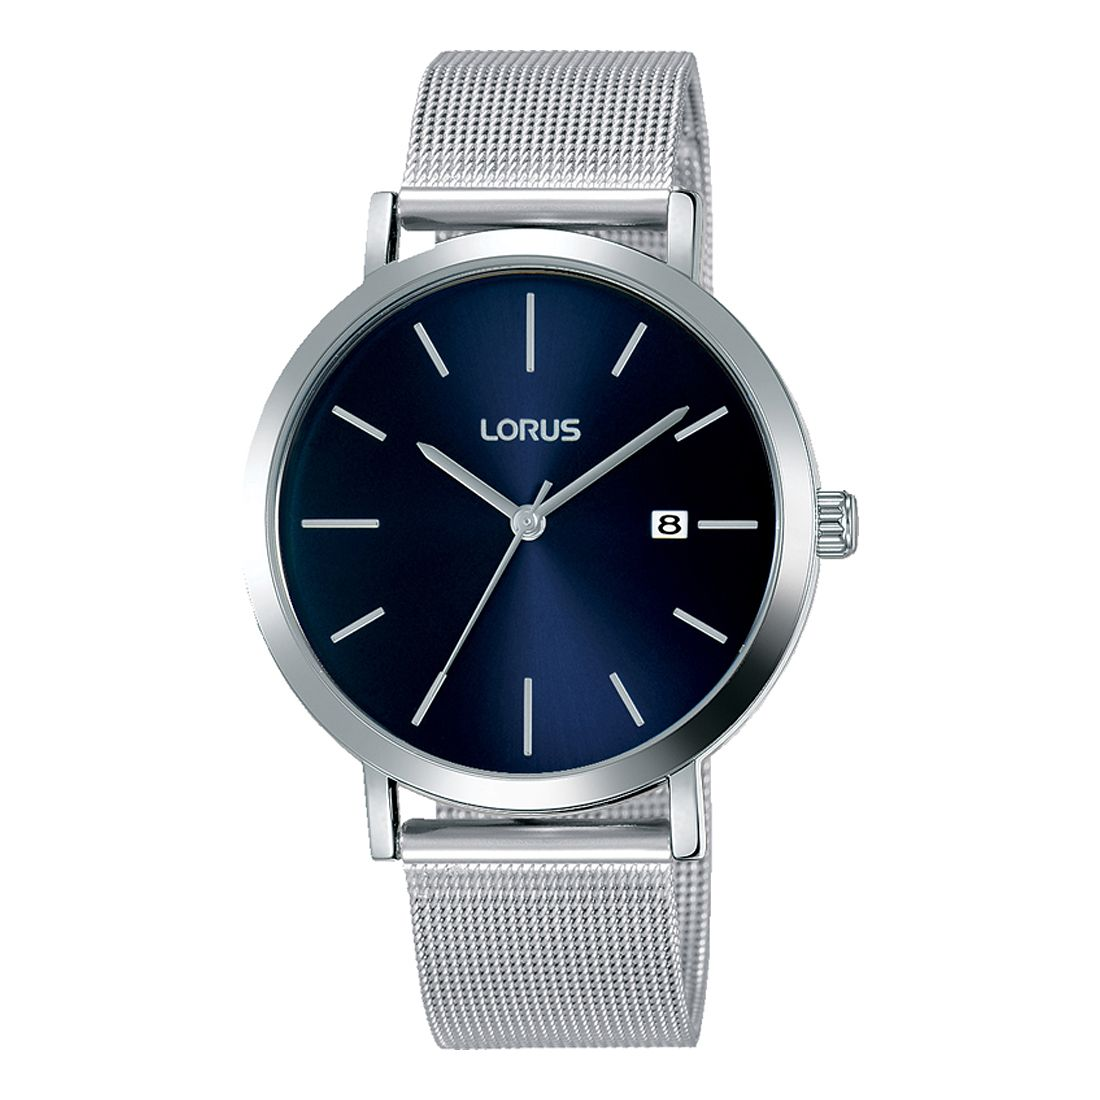 Lorus Men's Blue Dial Stainless Steel Mesh Bracelet Watch - Product number 4177509